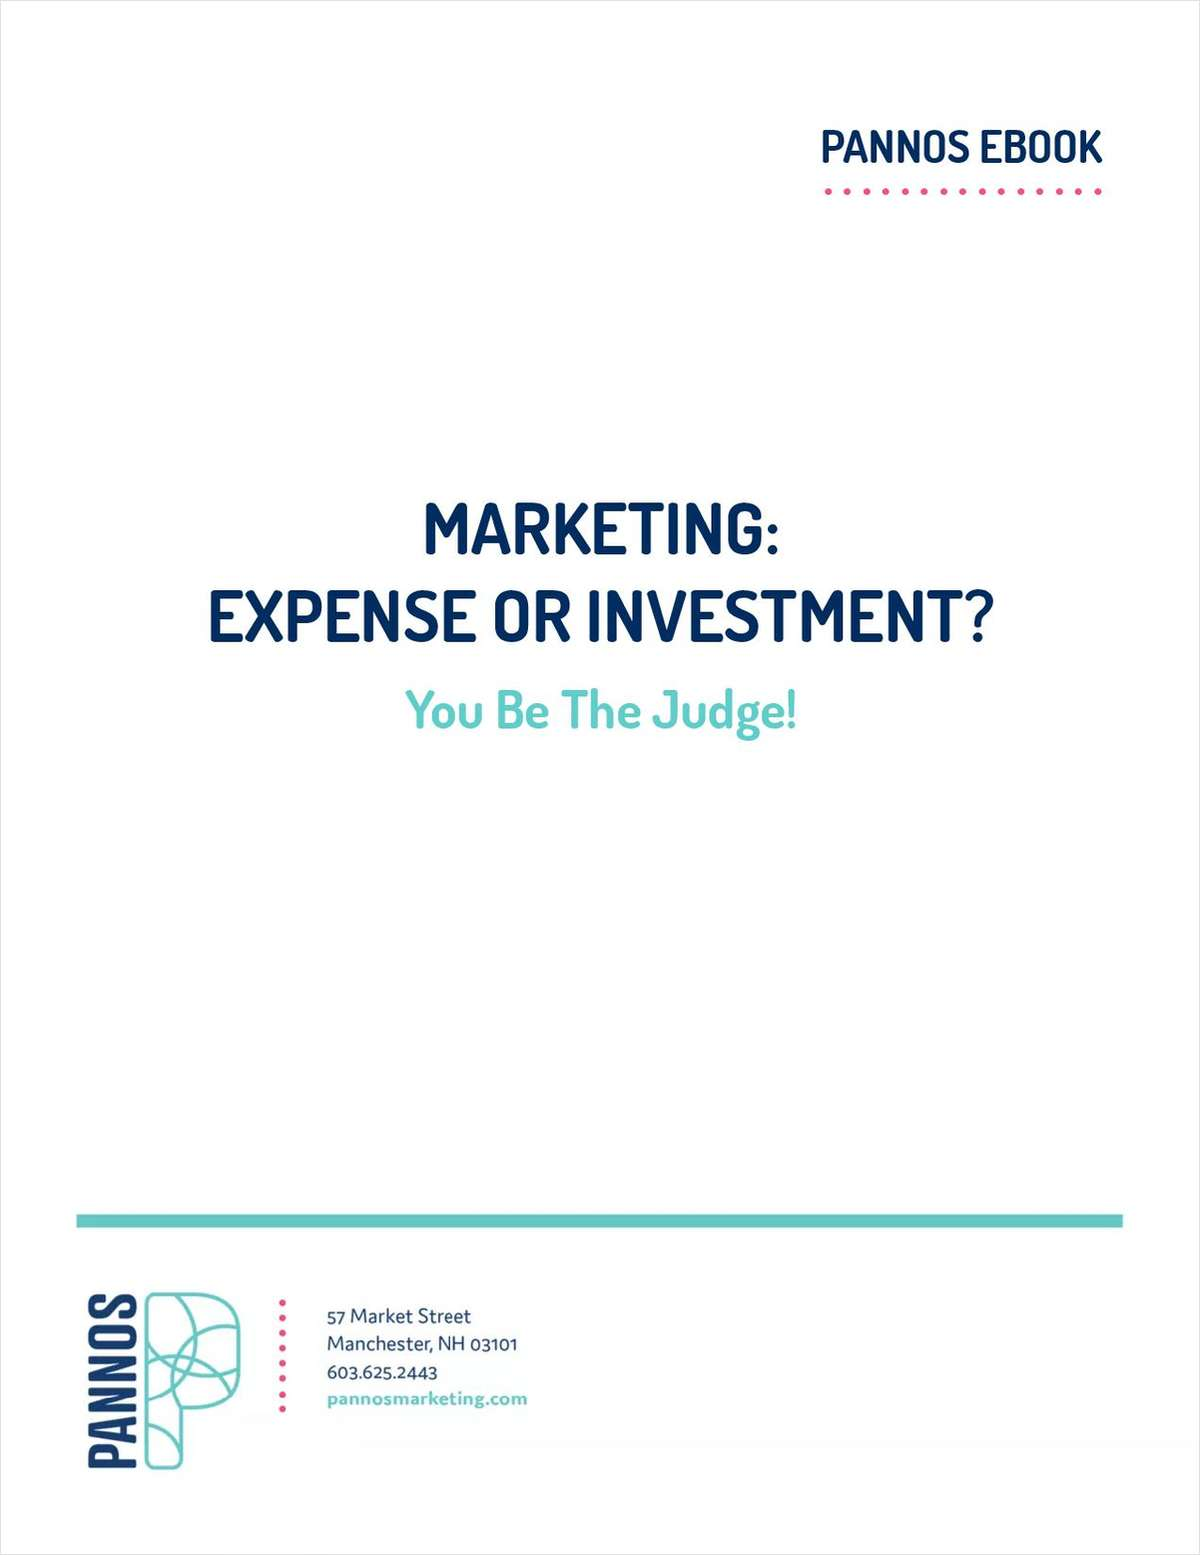 Marketing Expense or Investment?